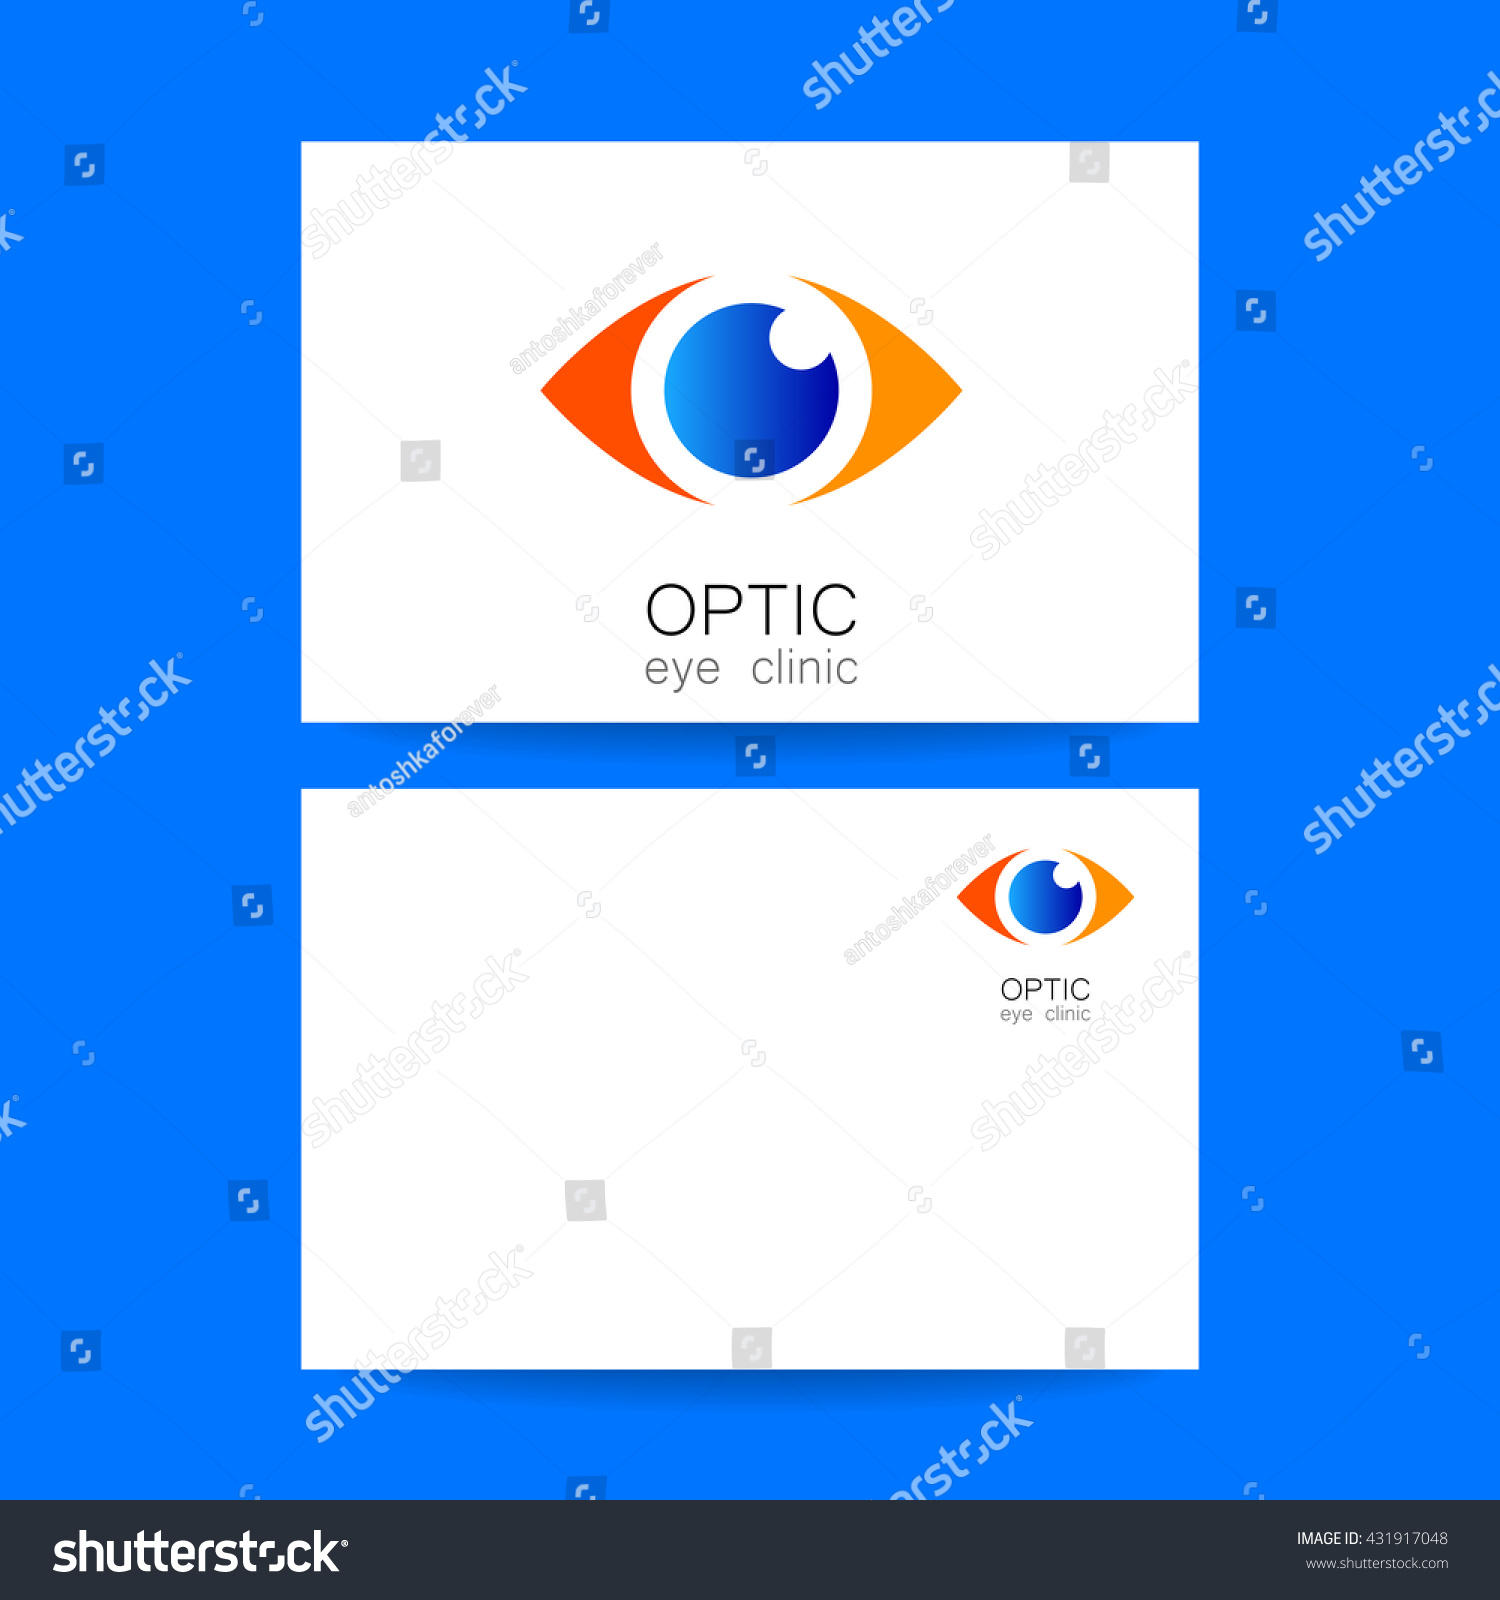 Ophthalmology Business Card. Optic Eye Clinic Logo. Optic Logo Design  Template For Medical Care